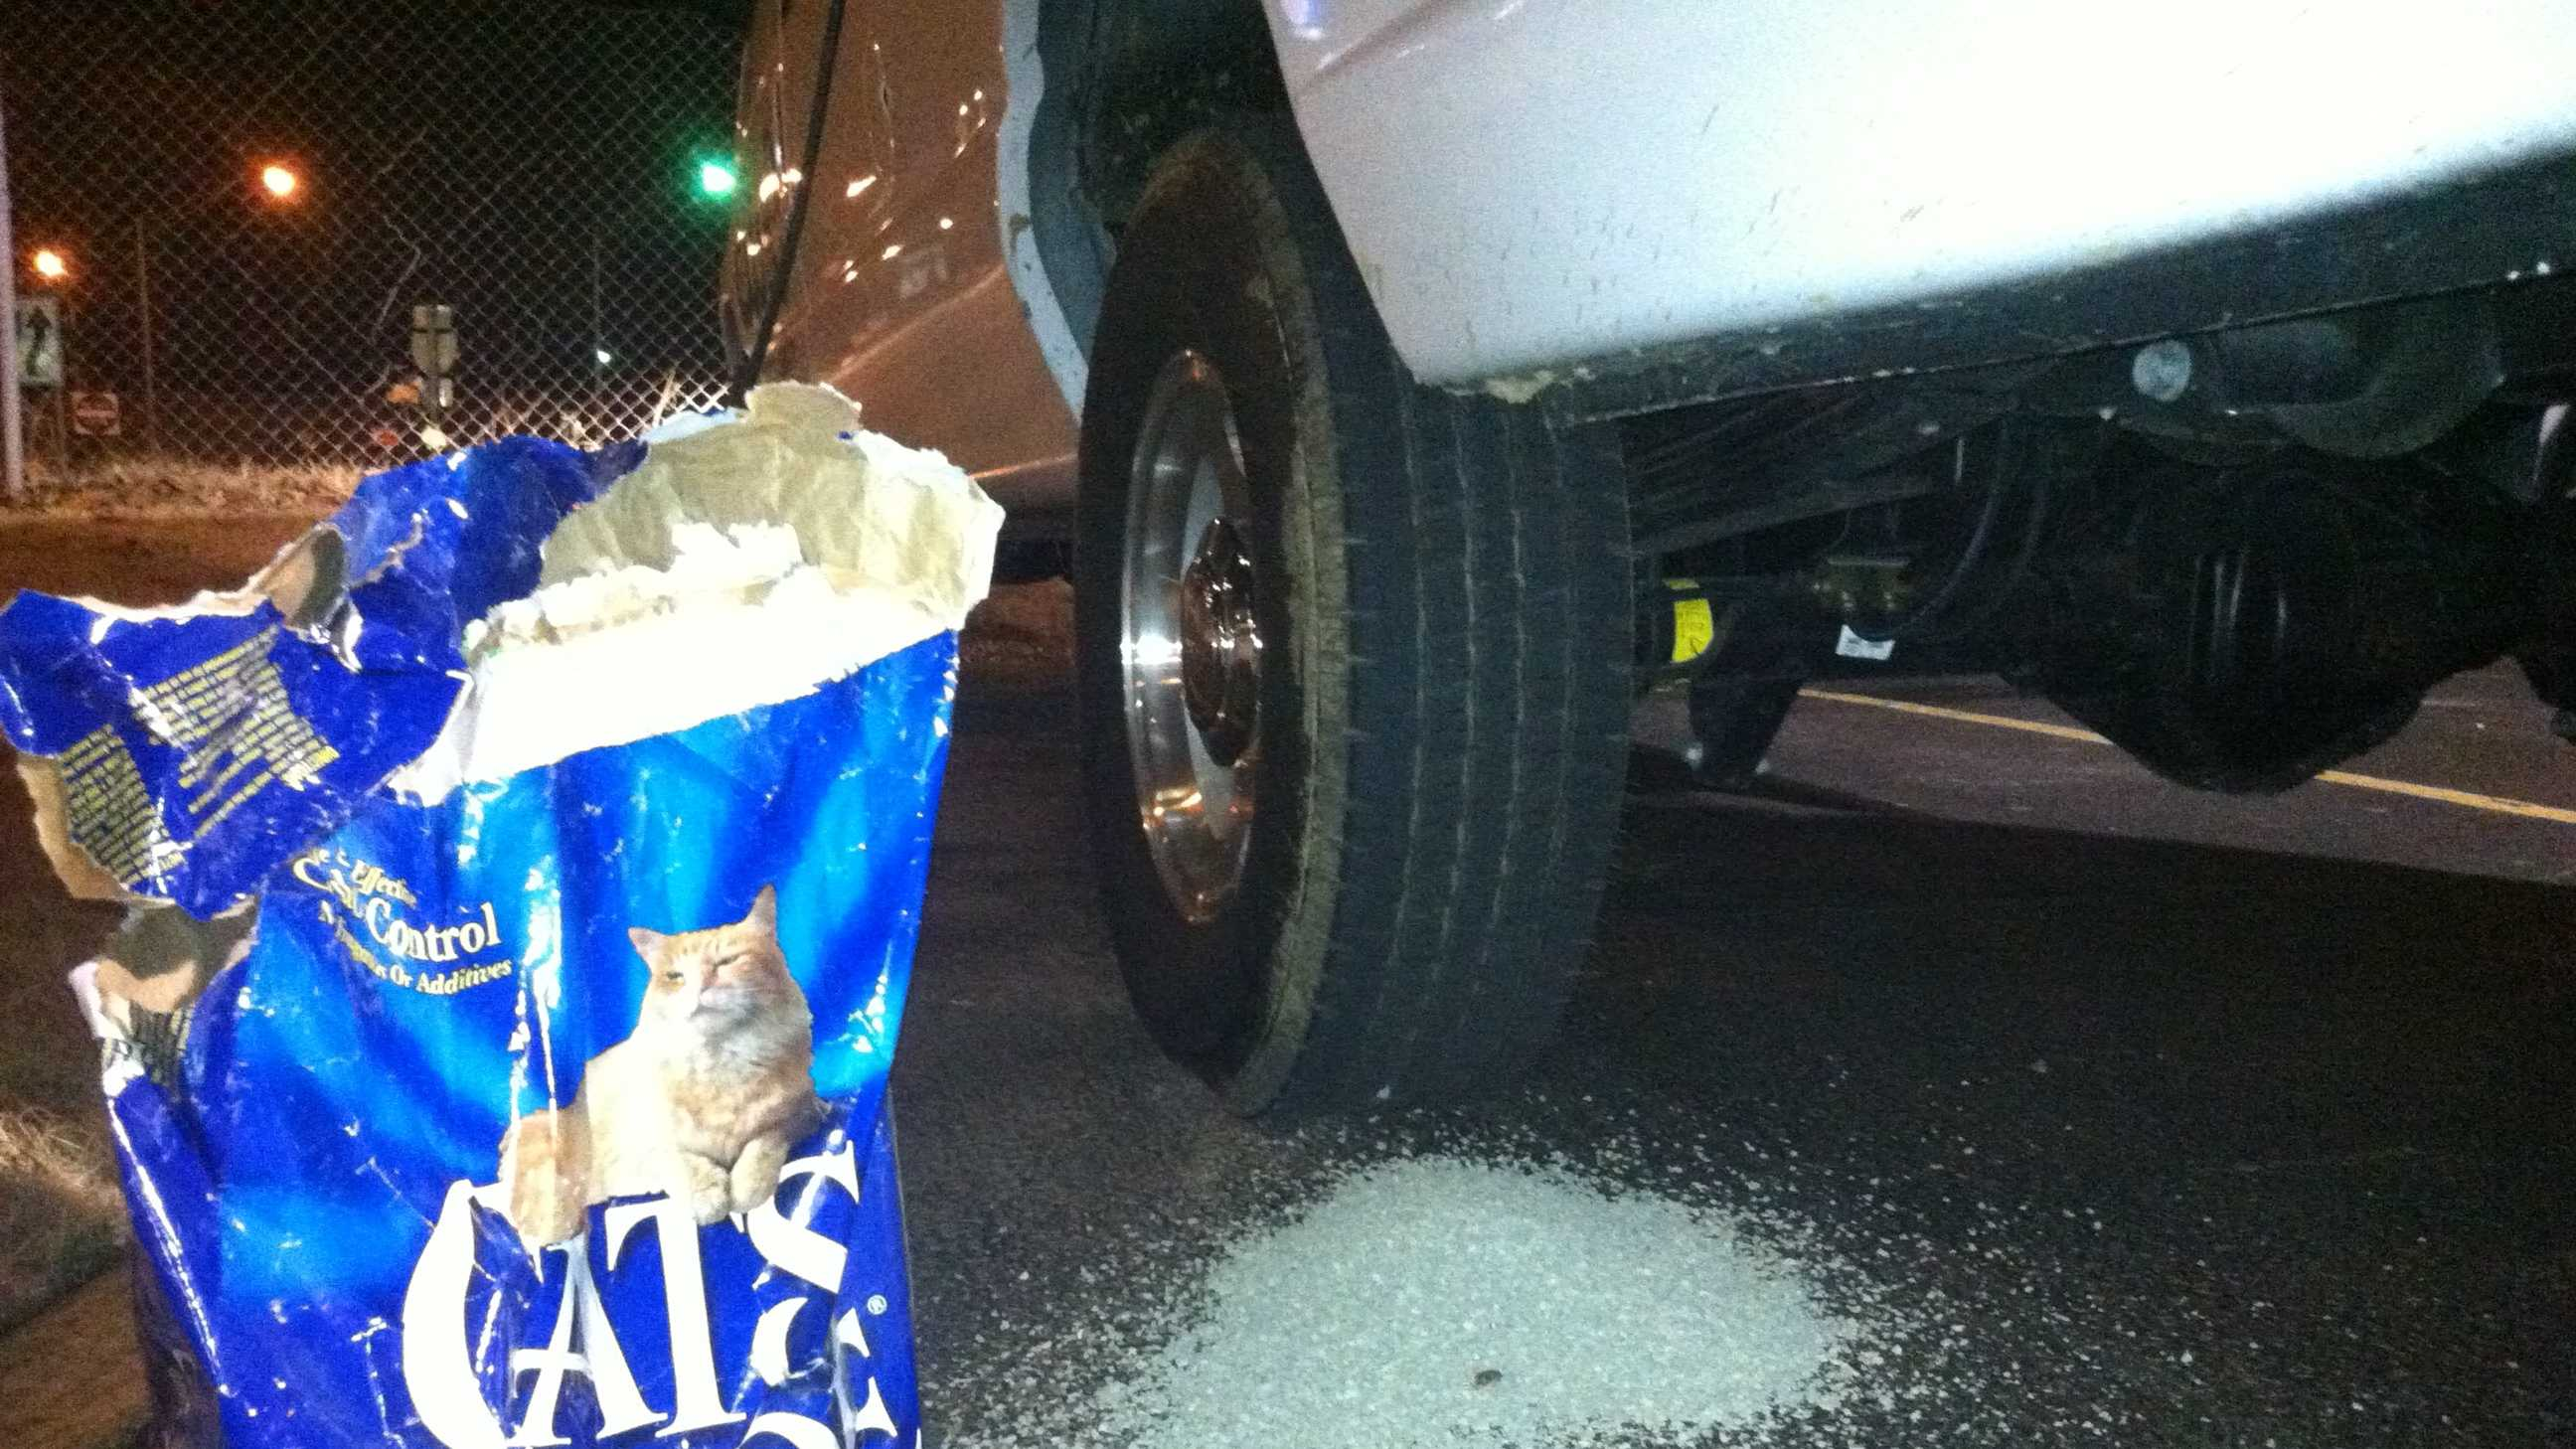 If you get stuck on snow or ice, use cat litter to create traction between your tires and the road if you get stuck.